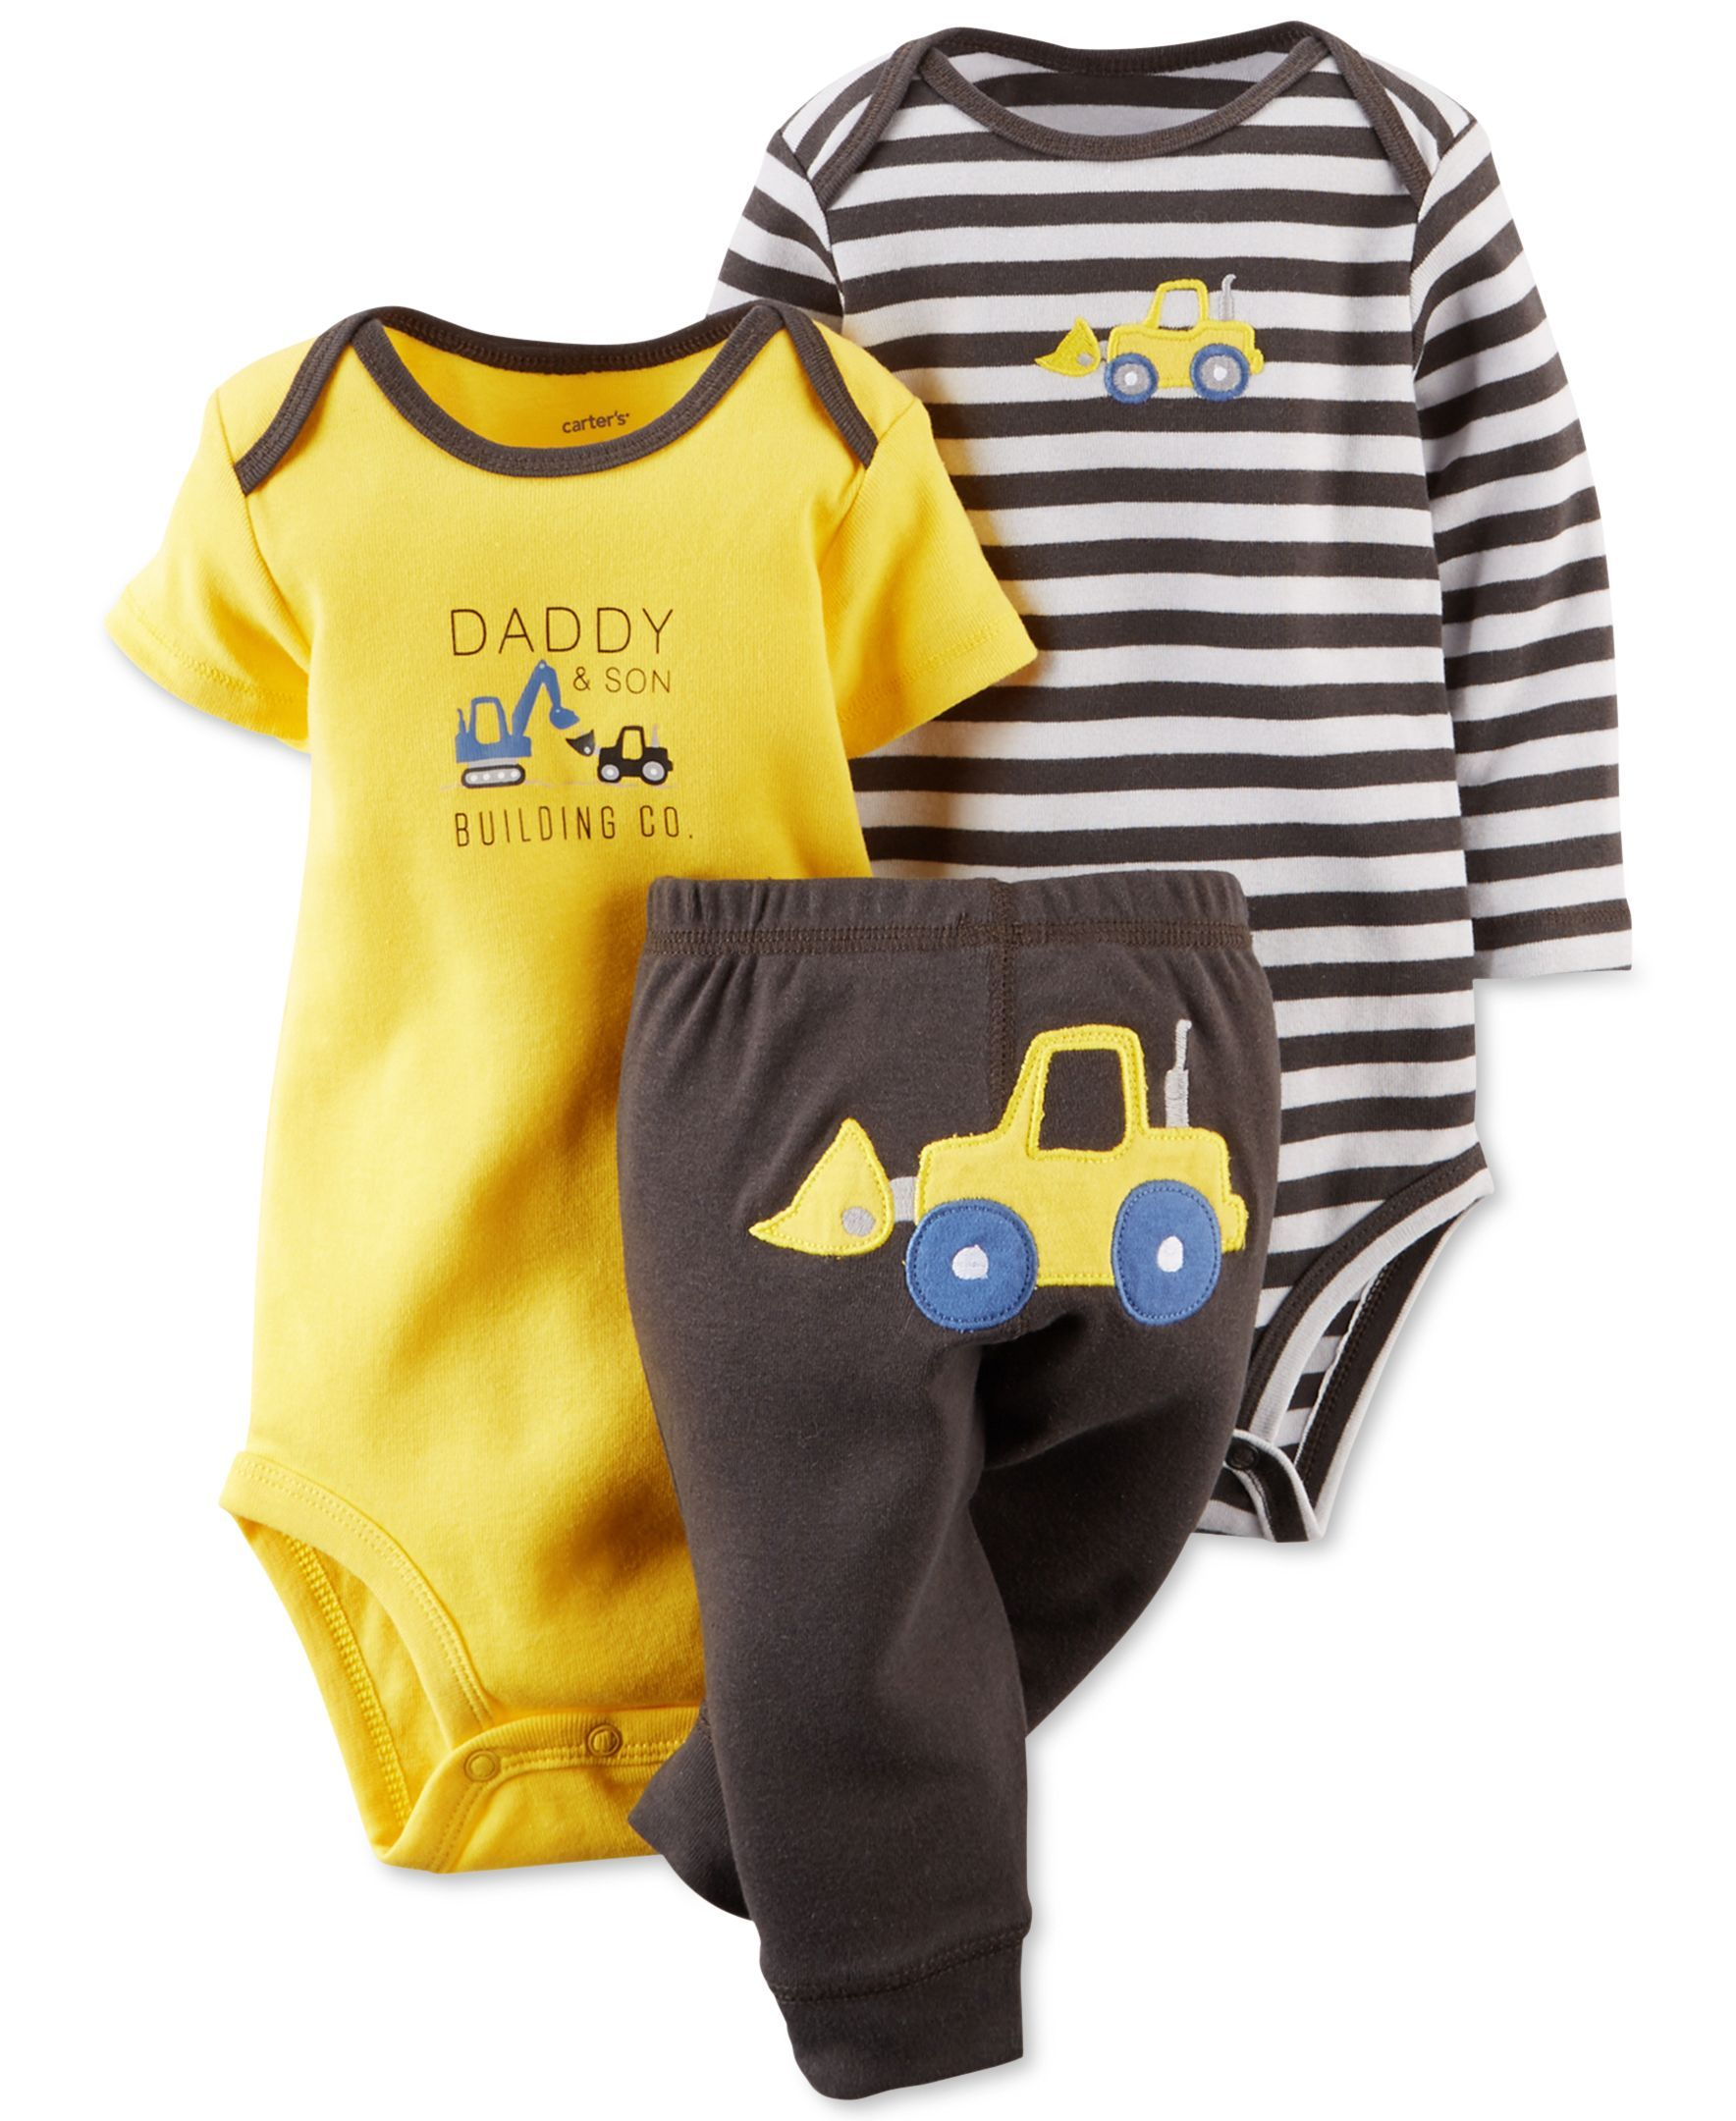 be7d3362e Carter s Baby Boys  3-Piece Construction Bodysuits   Pants Set ...